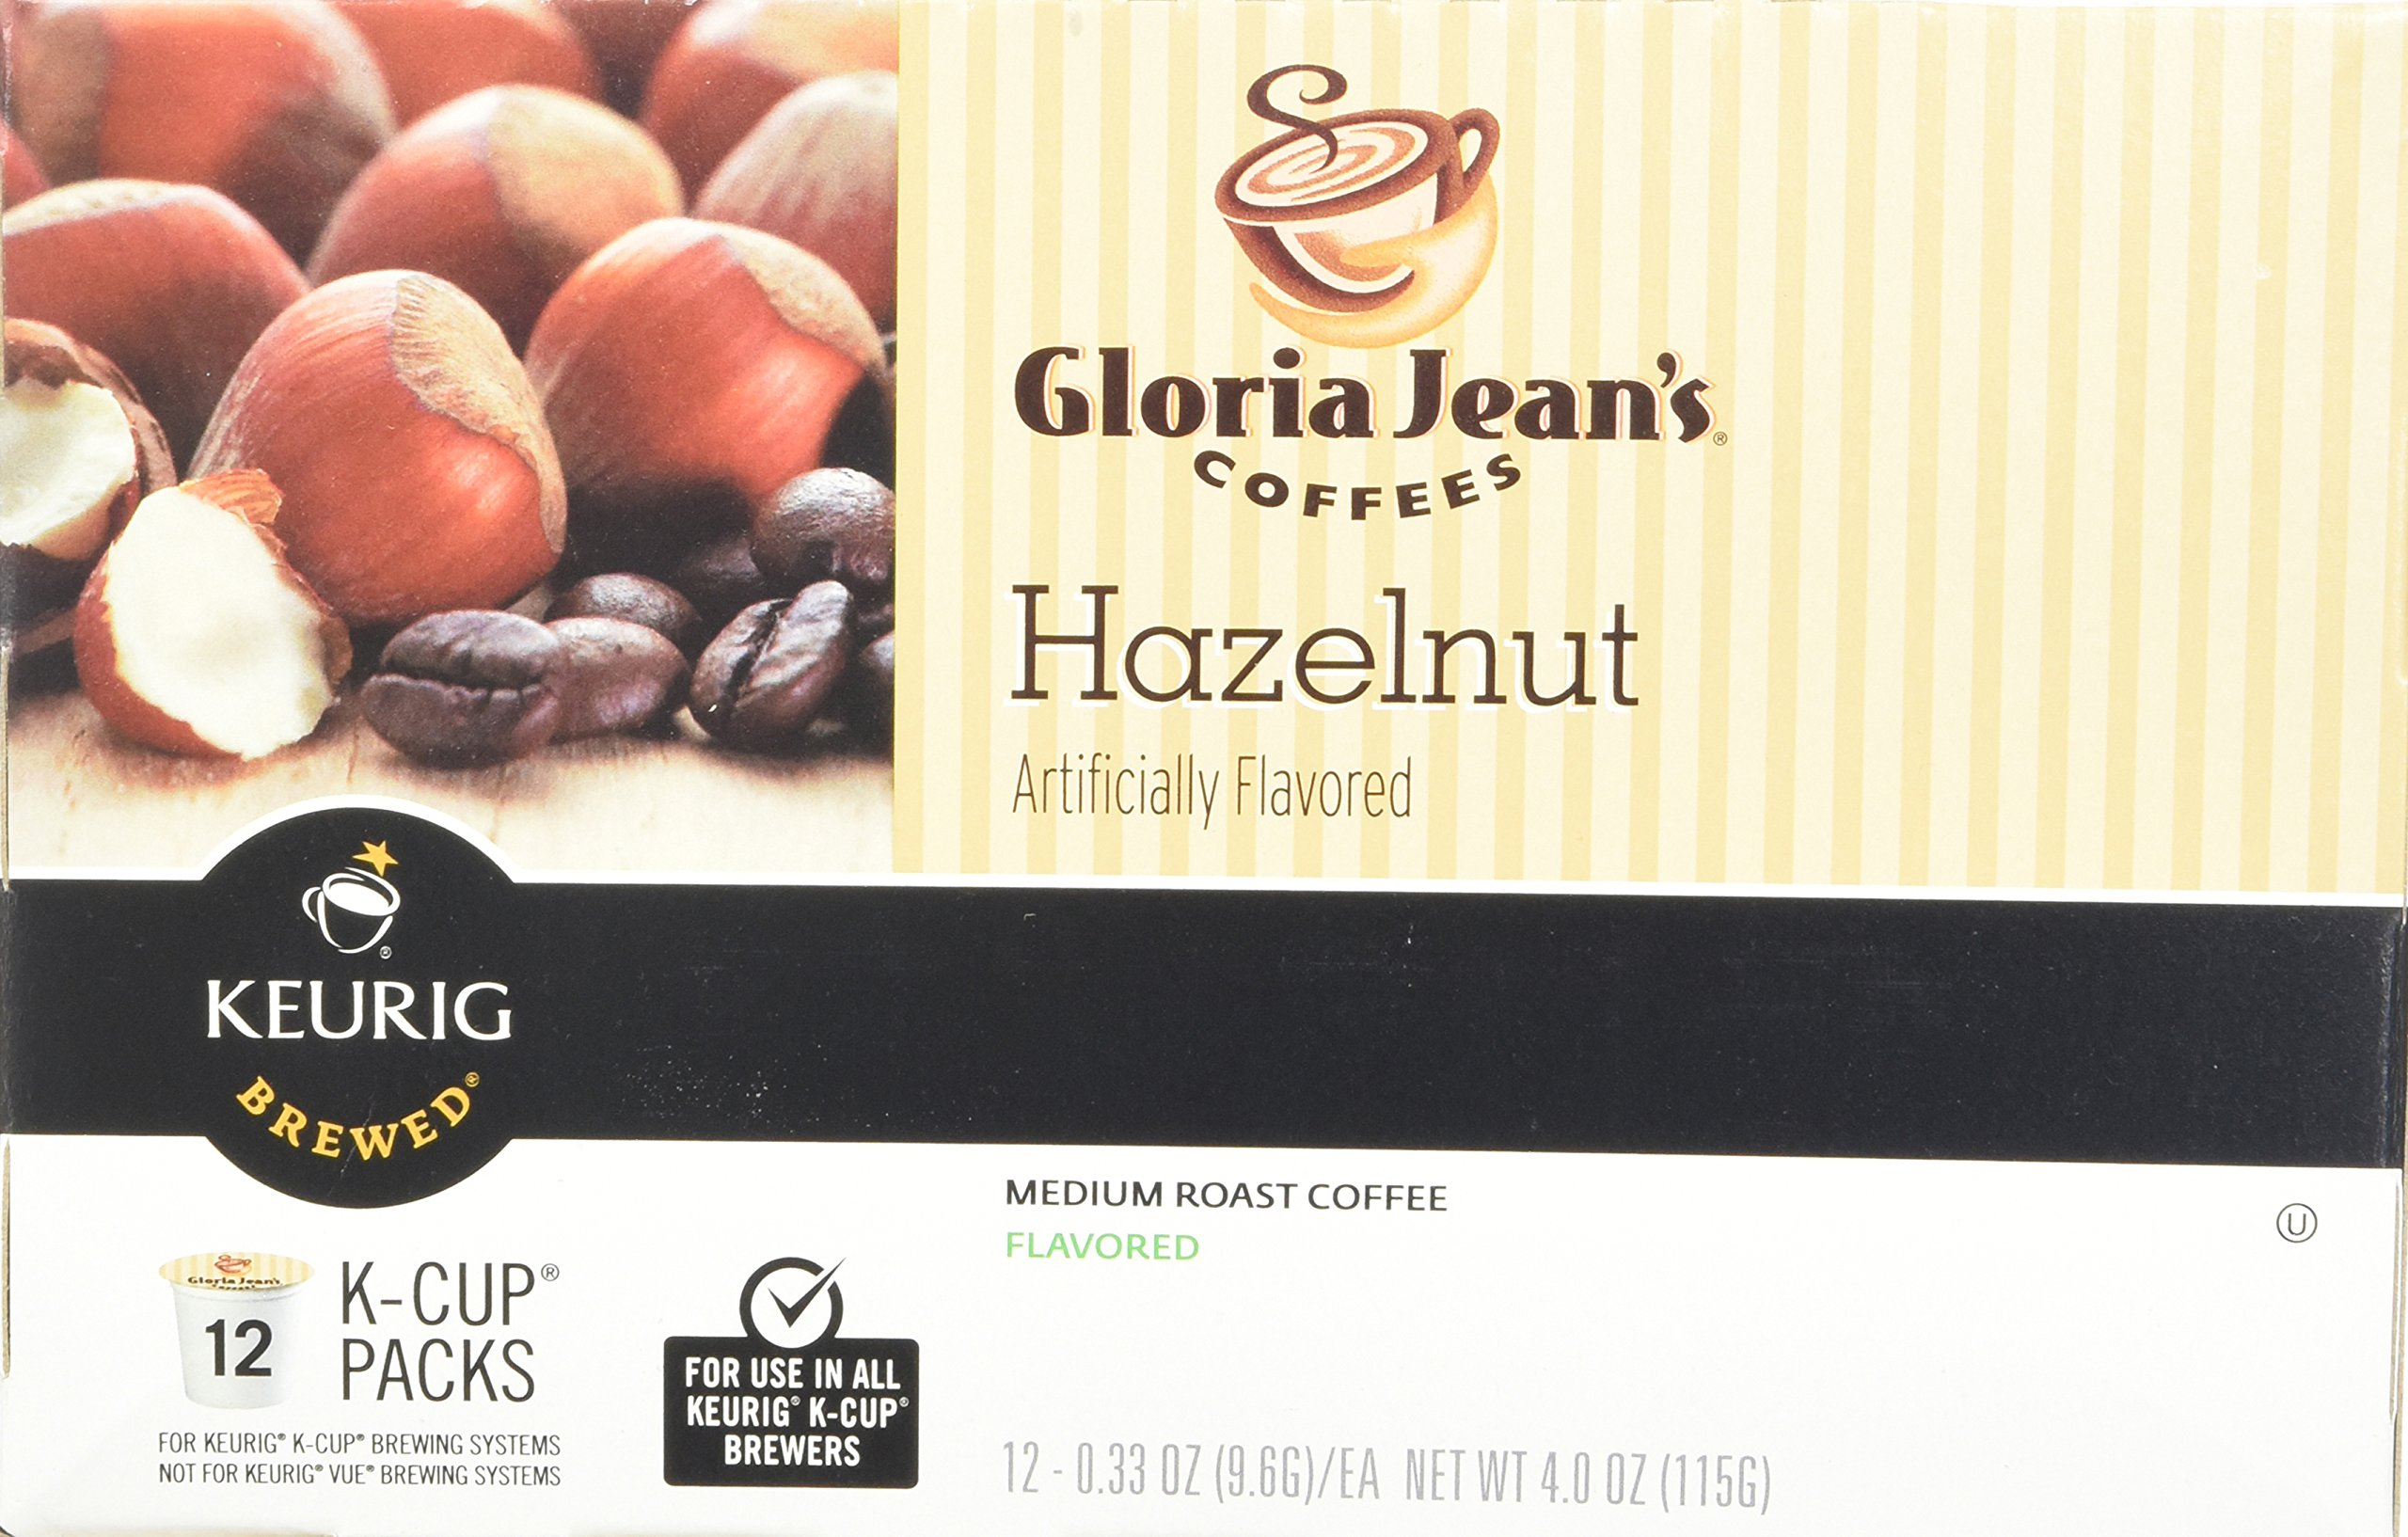 Green Mountain Coffee Roasters Gourmet Single Cup Coffee Hazelnut Gloria Jean's Coffee 12 K-Cups by Green Mountain Coffee Roasters (Image #4)